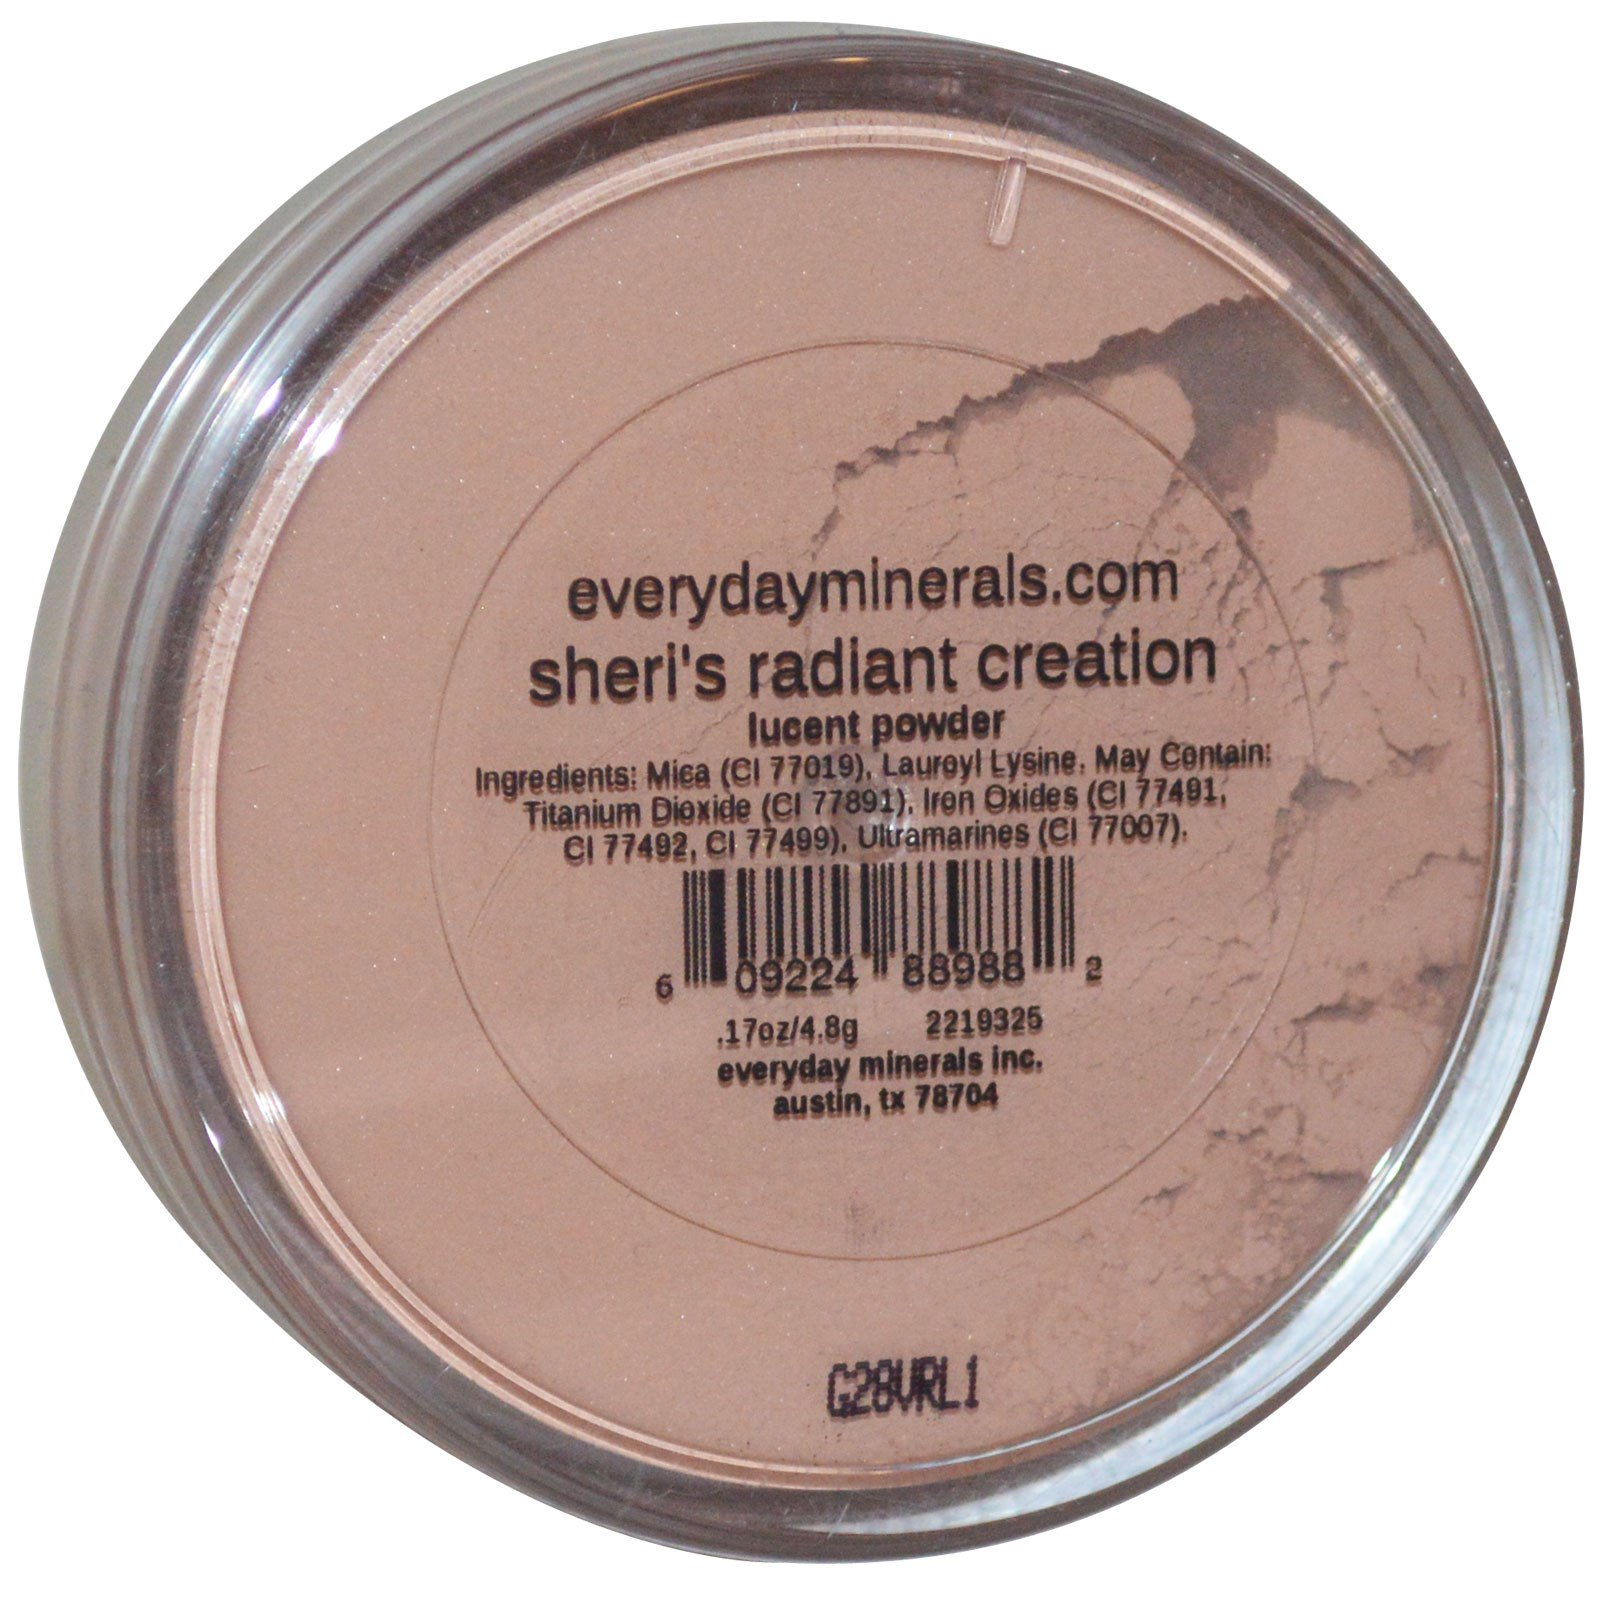 everyday minerals face lucent powder sheri 39 s radiant creation 17 oz 4 8 g. Black Bedroom Furniture Sets. Home Design Ideas